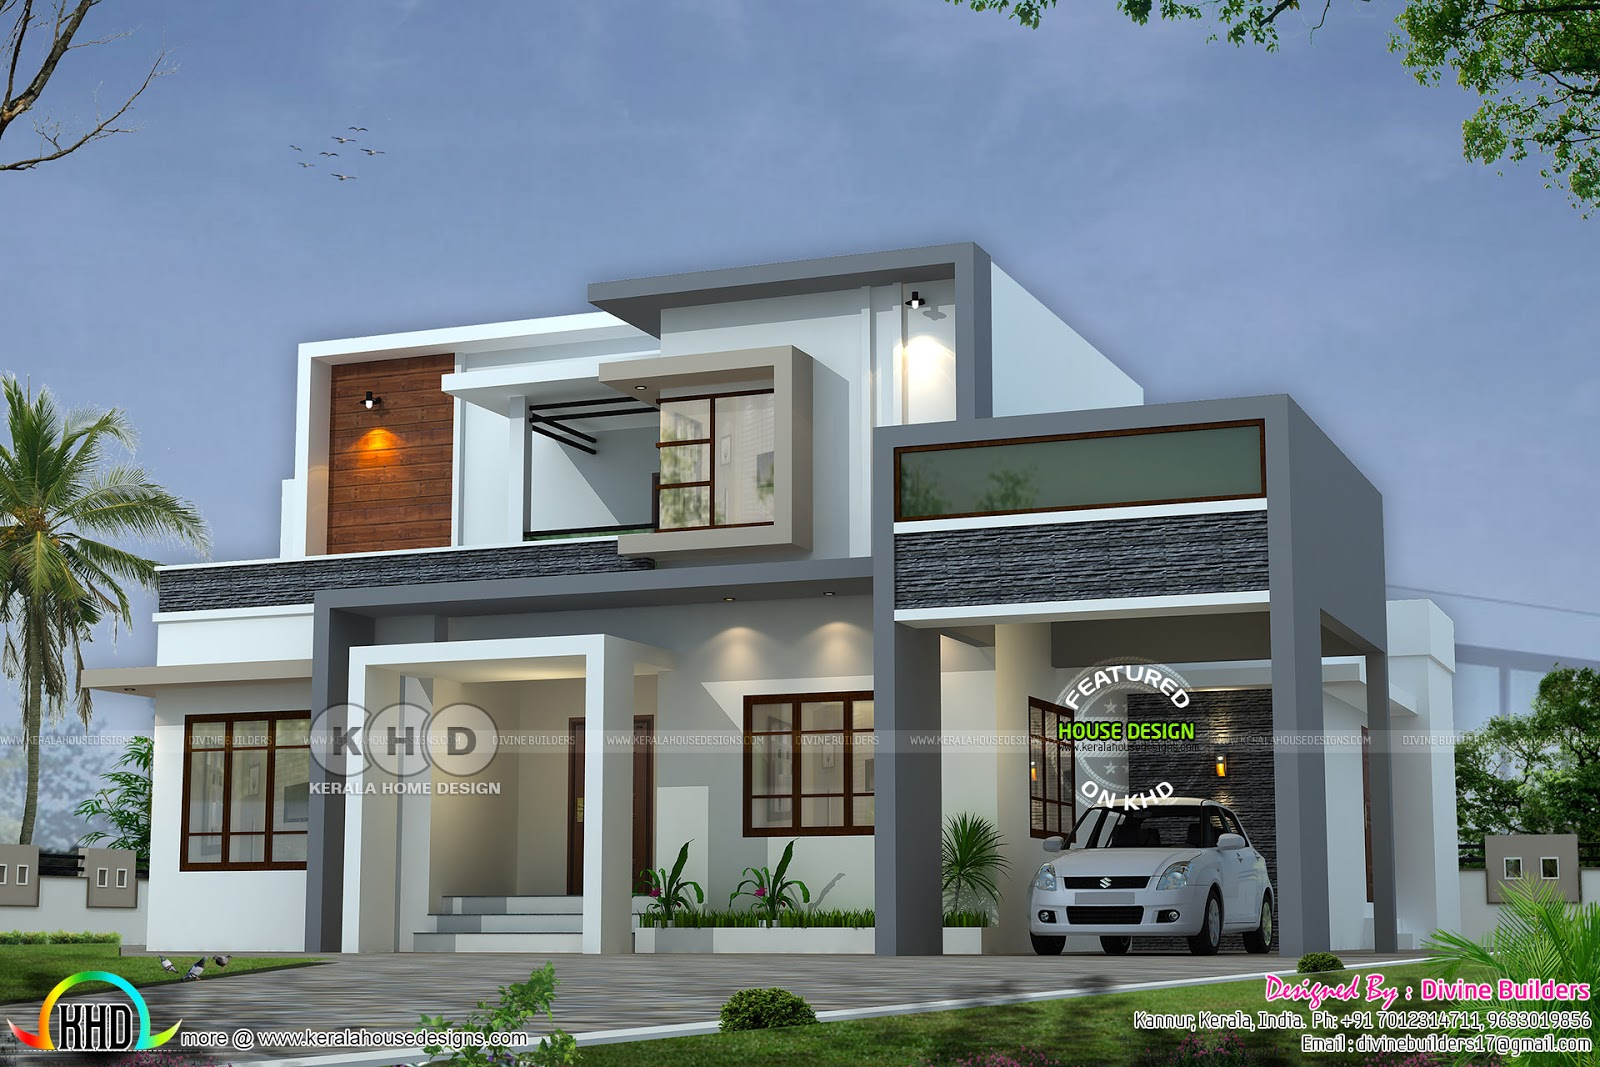 2017 kerala home design and floor plans for Home plas